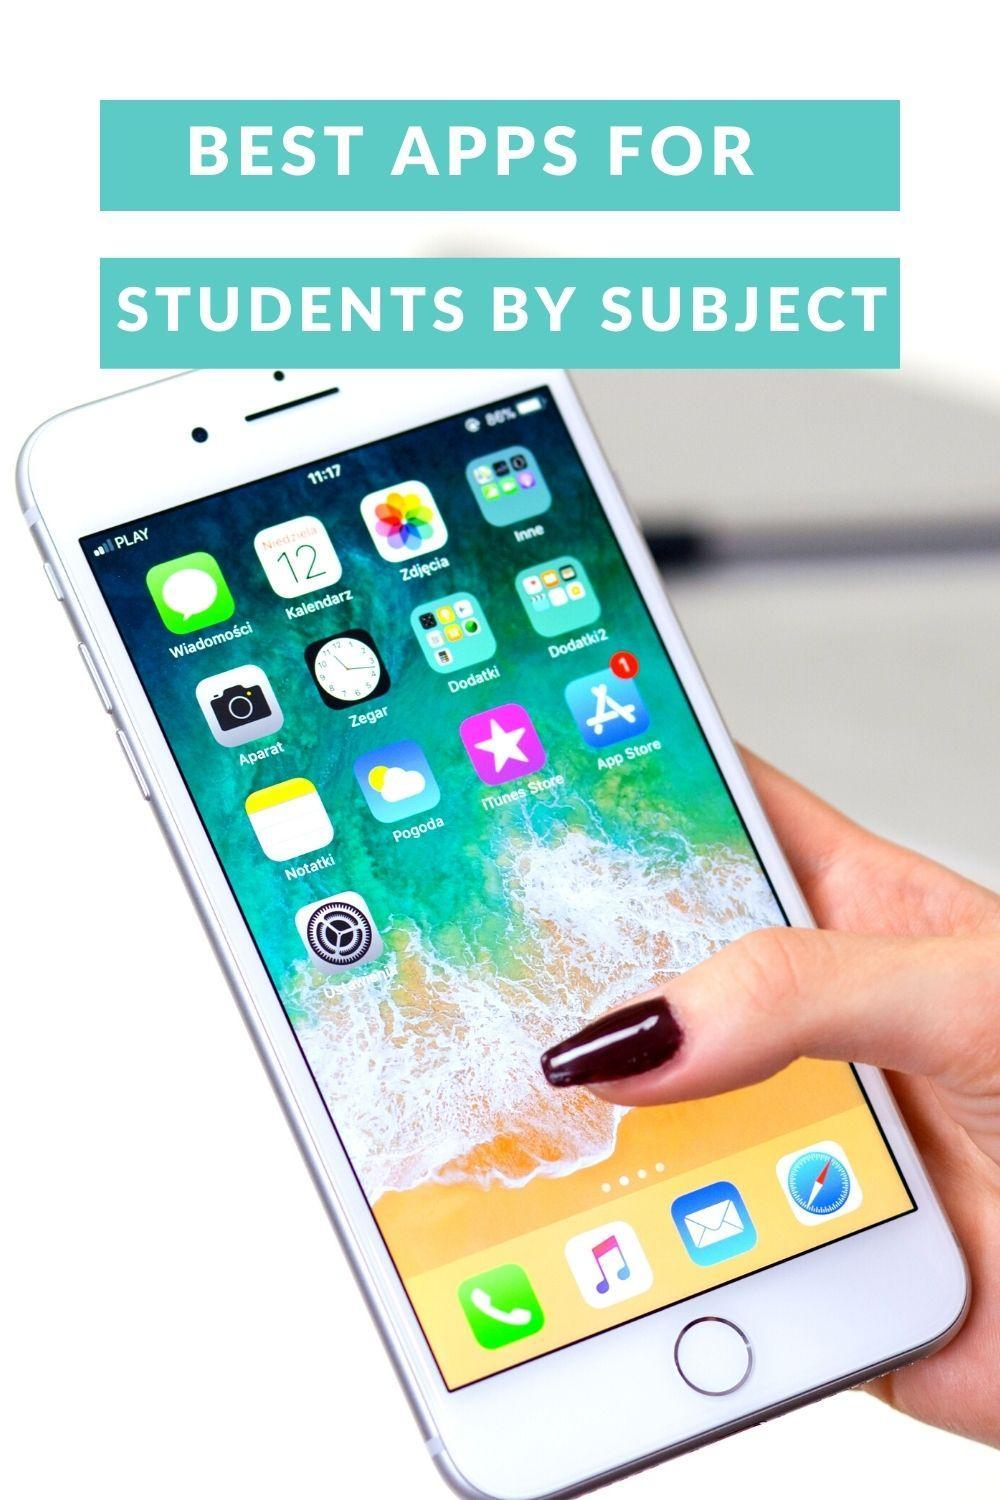 Best Apps For Students By Subject